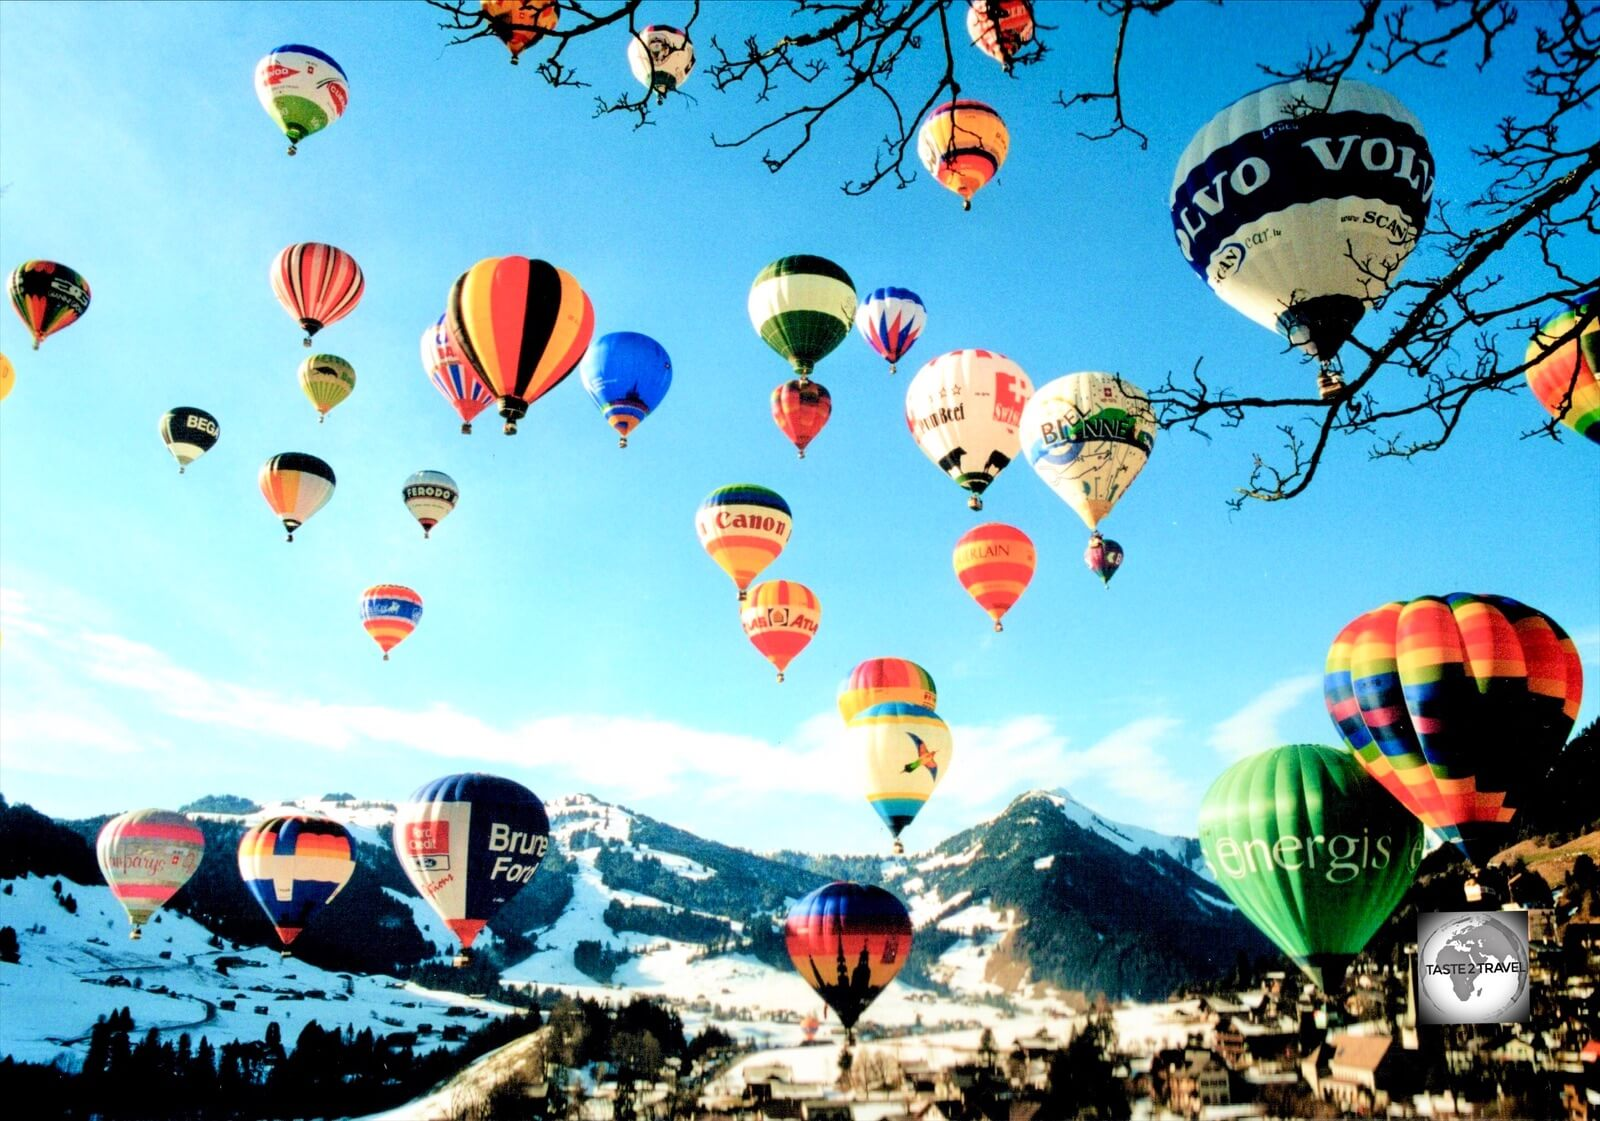 Balloon Festival Switzerland